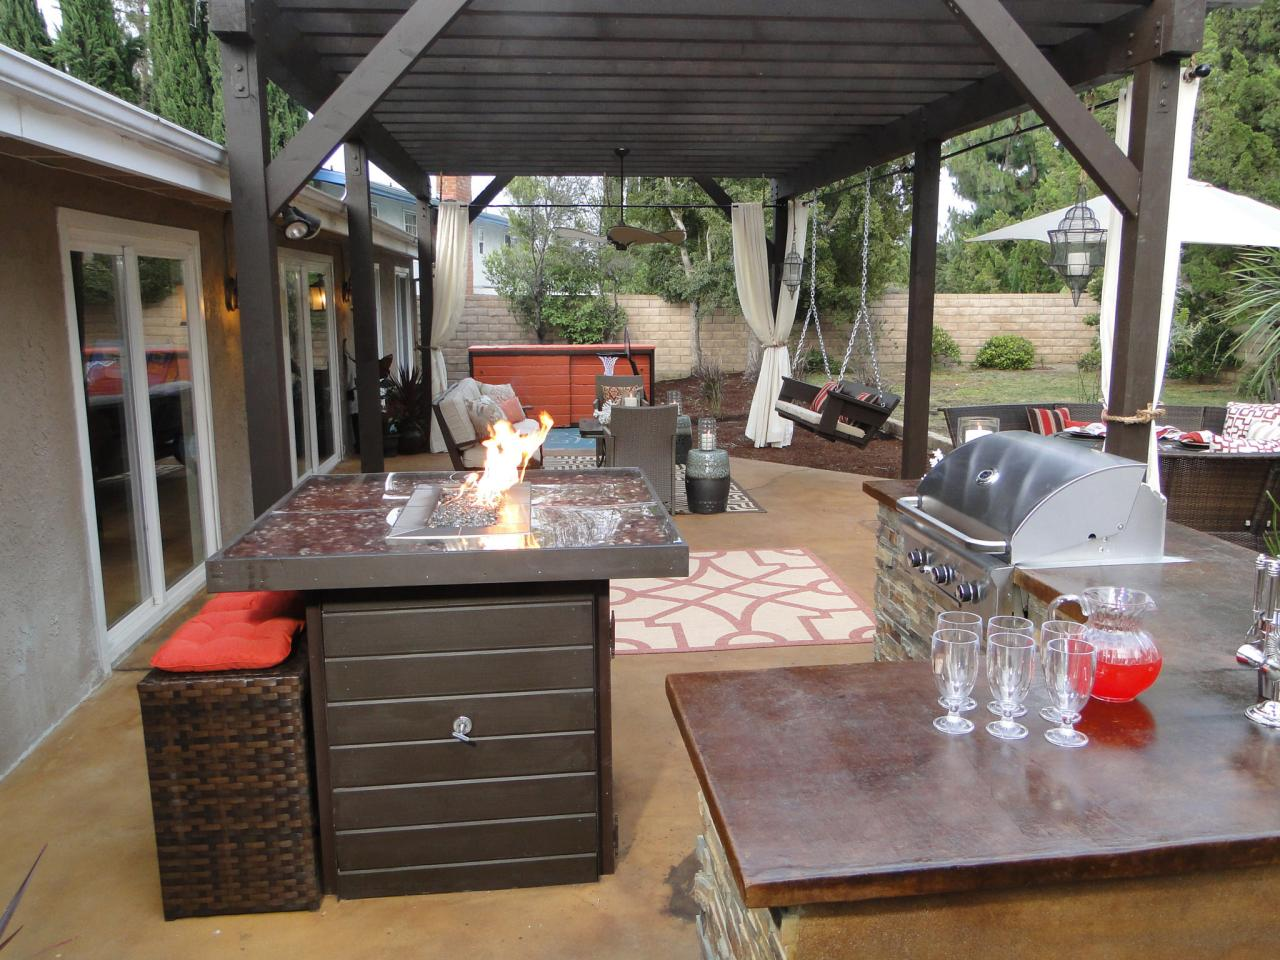 Uncategorized Backyard Kitchen Design Ideas outdoor kitchen design ideas pictures tips expert advice hgtv